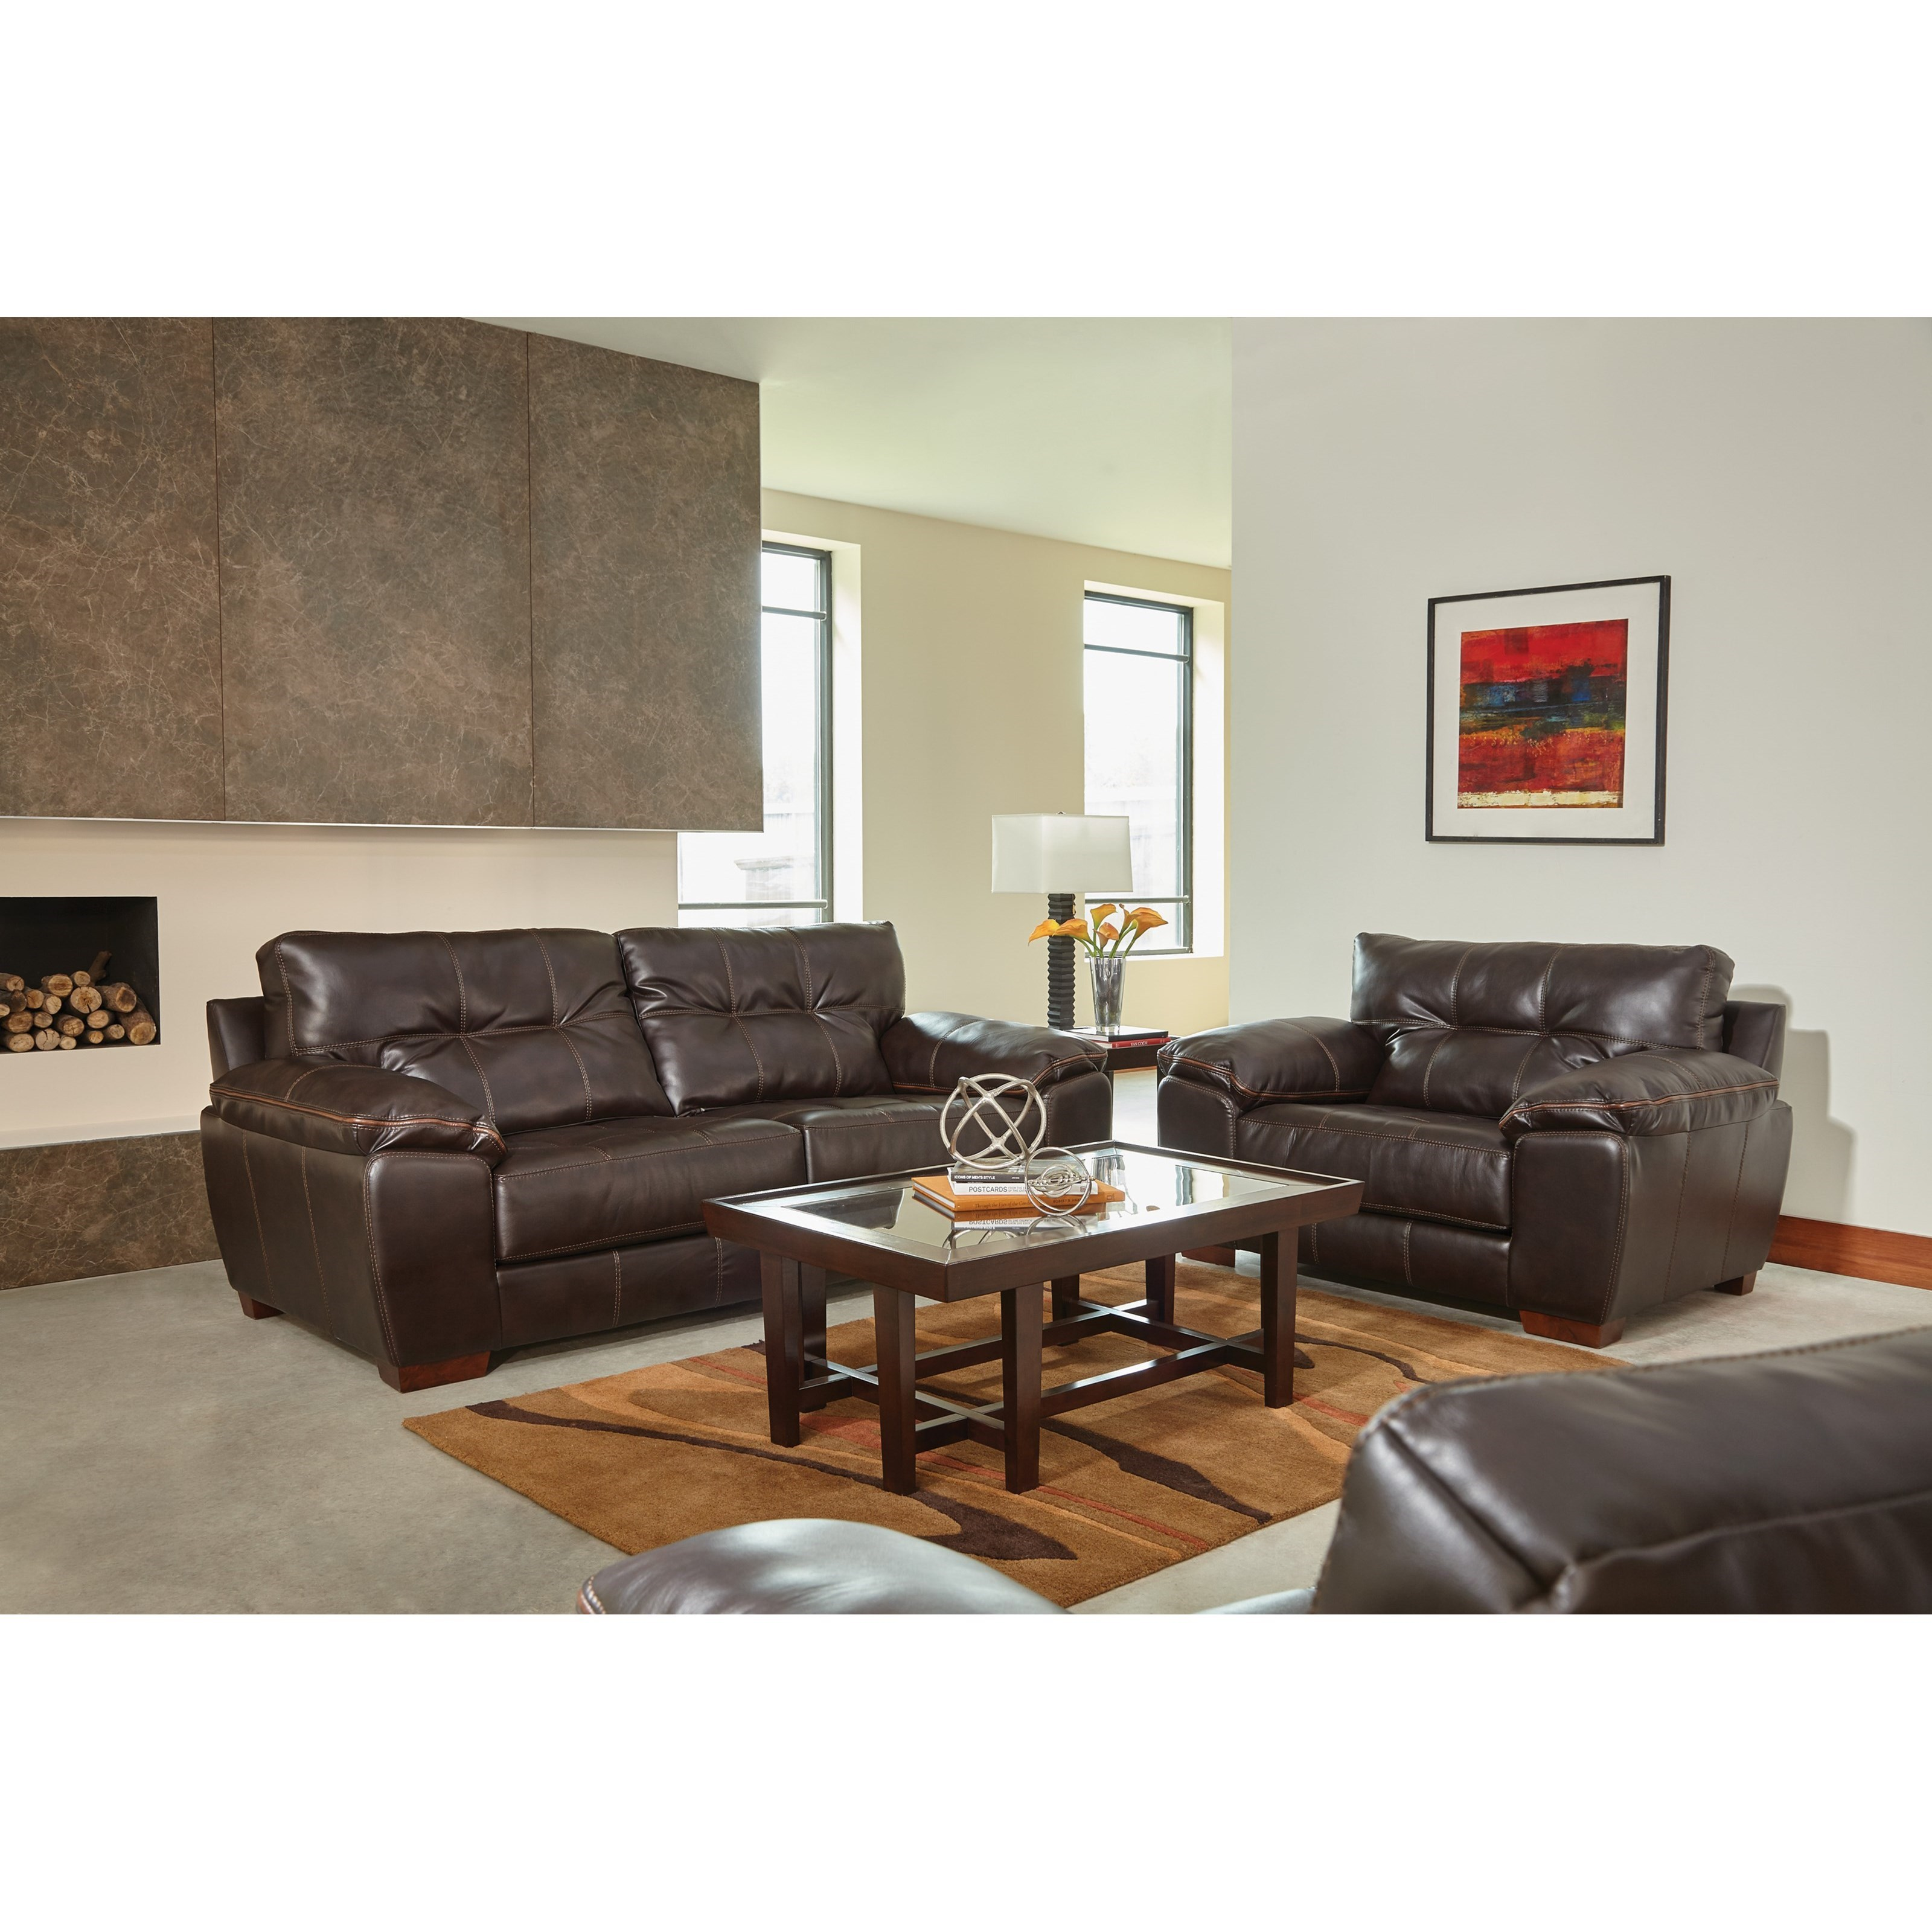 Hudson Living Room Group by Jackson Furniture at Northeast Factory Direct